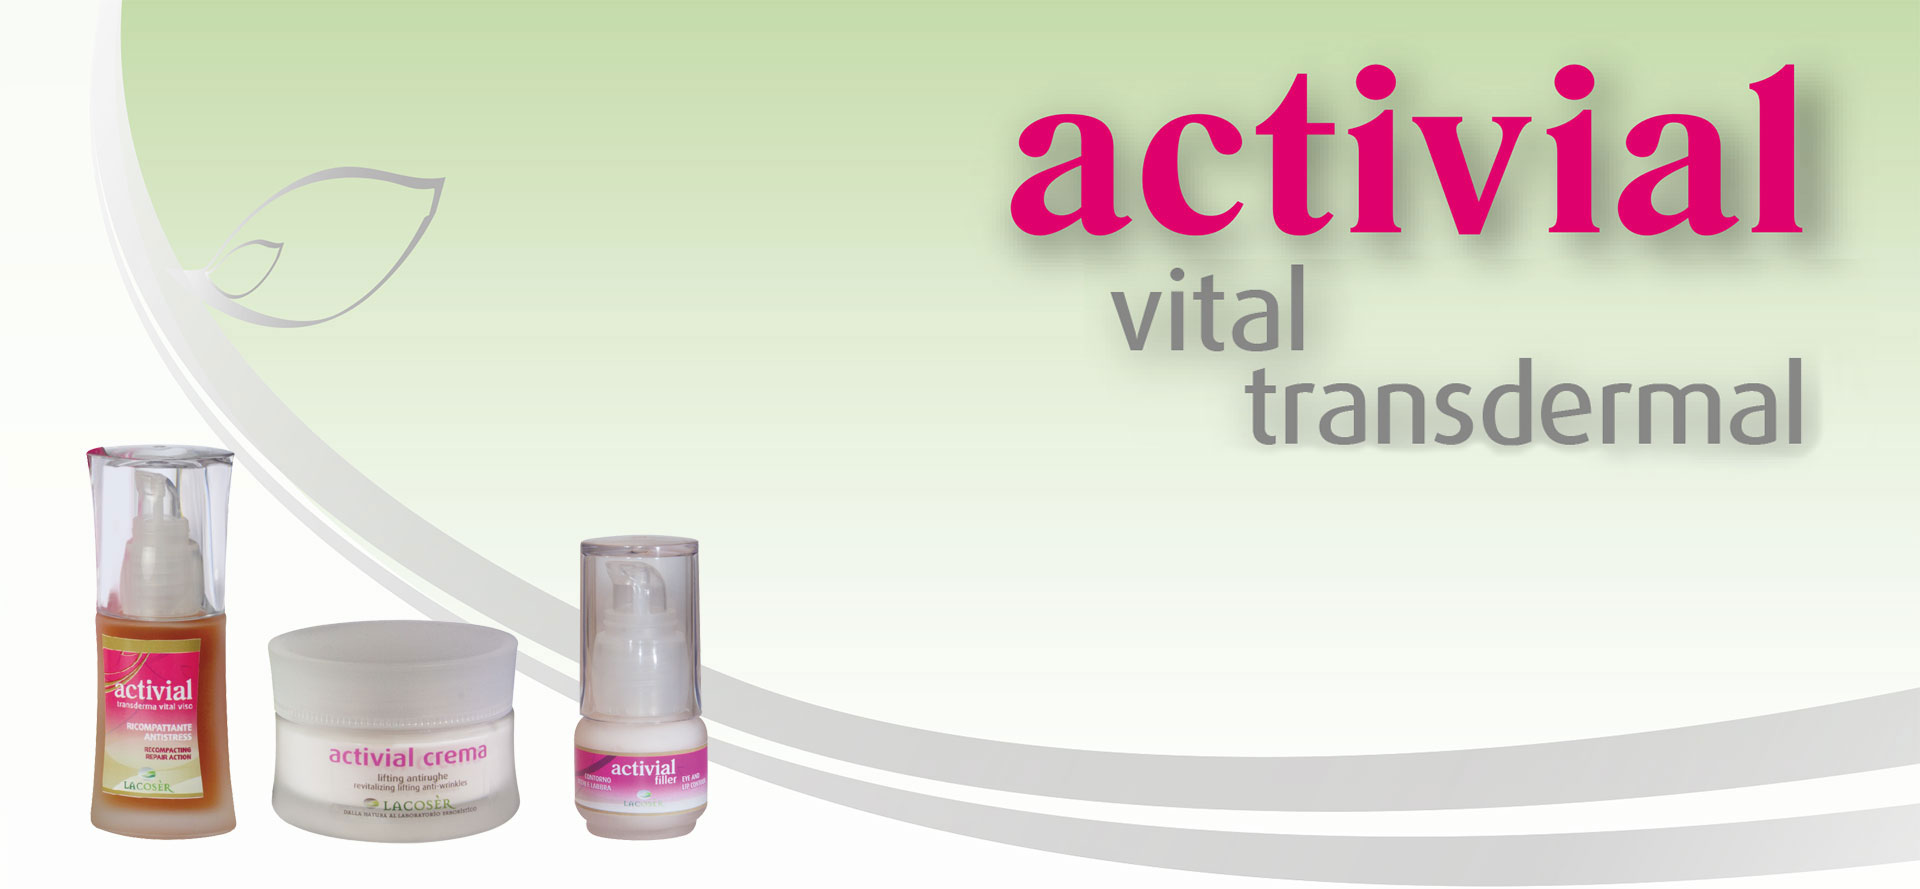 ACTIVIAL vital transdermal face and body develops a restructuring, compacting, reparing and anti-stress action